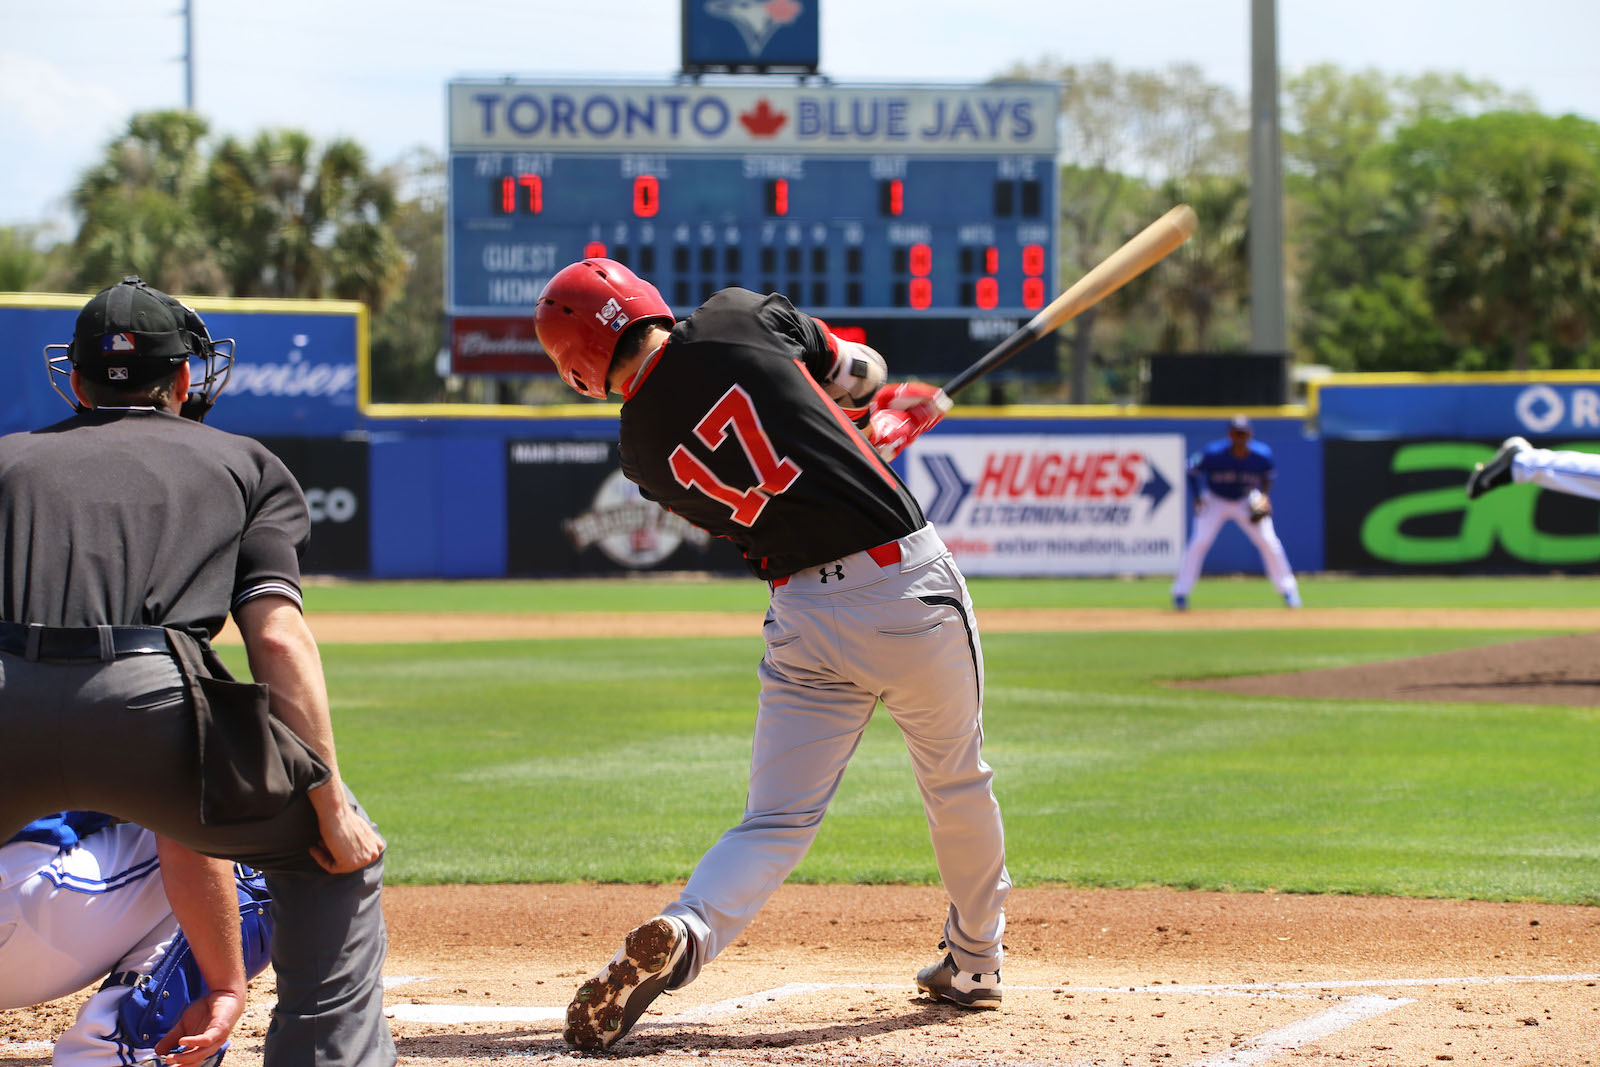 Junior National Team to face Blue Jays in spring contest